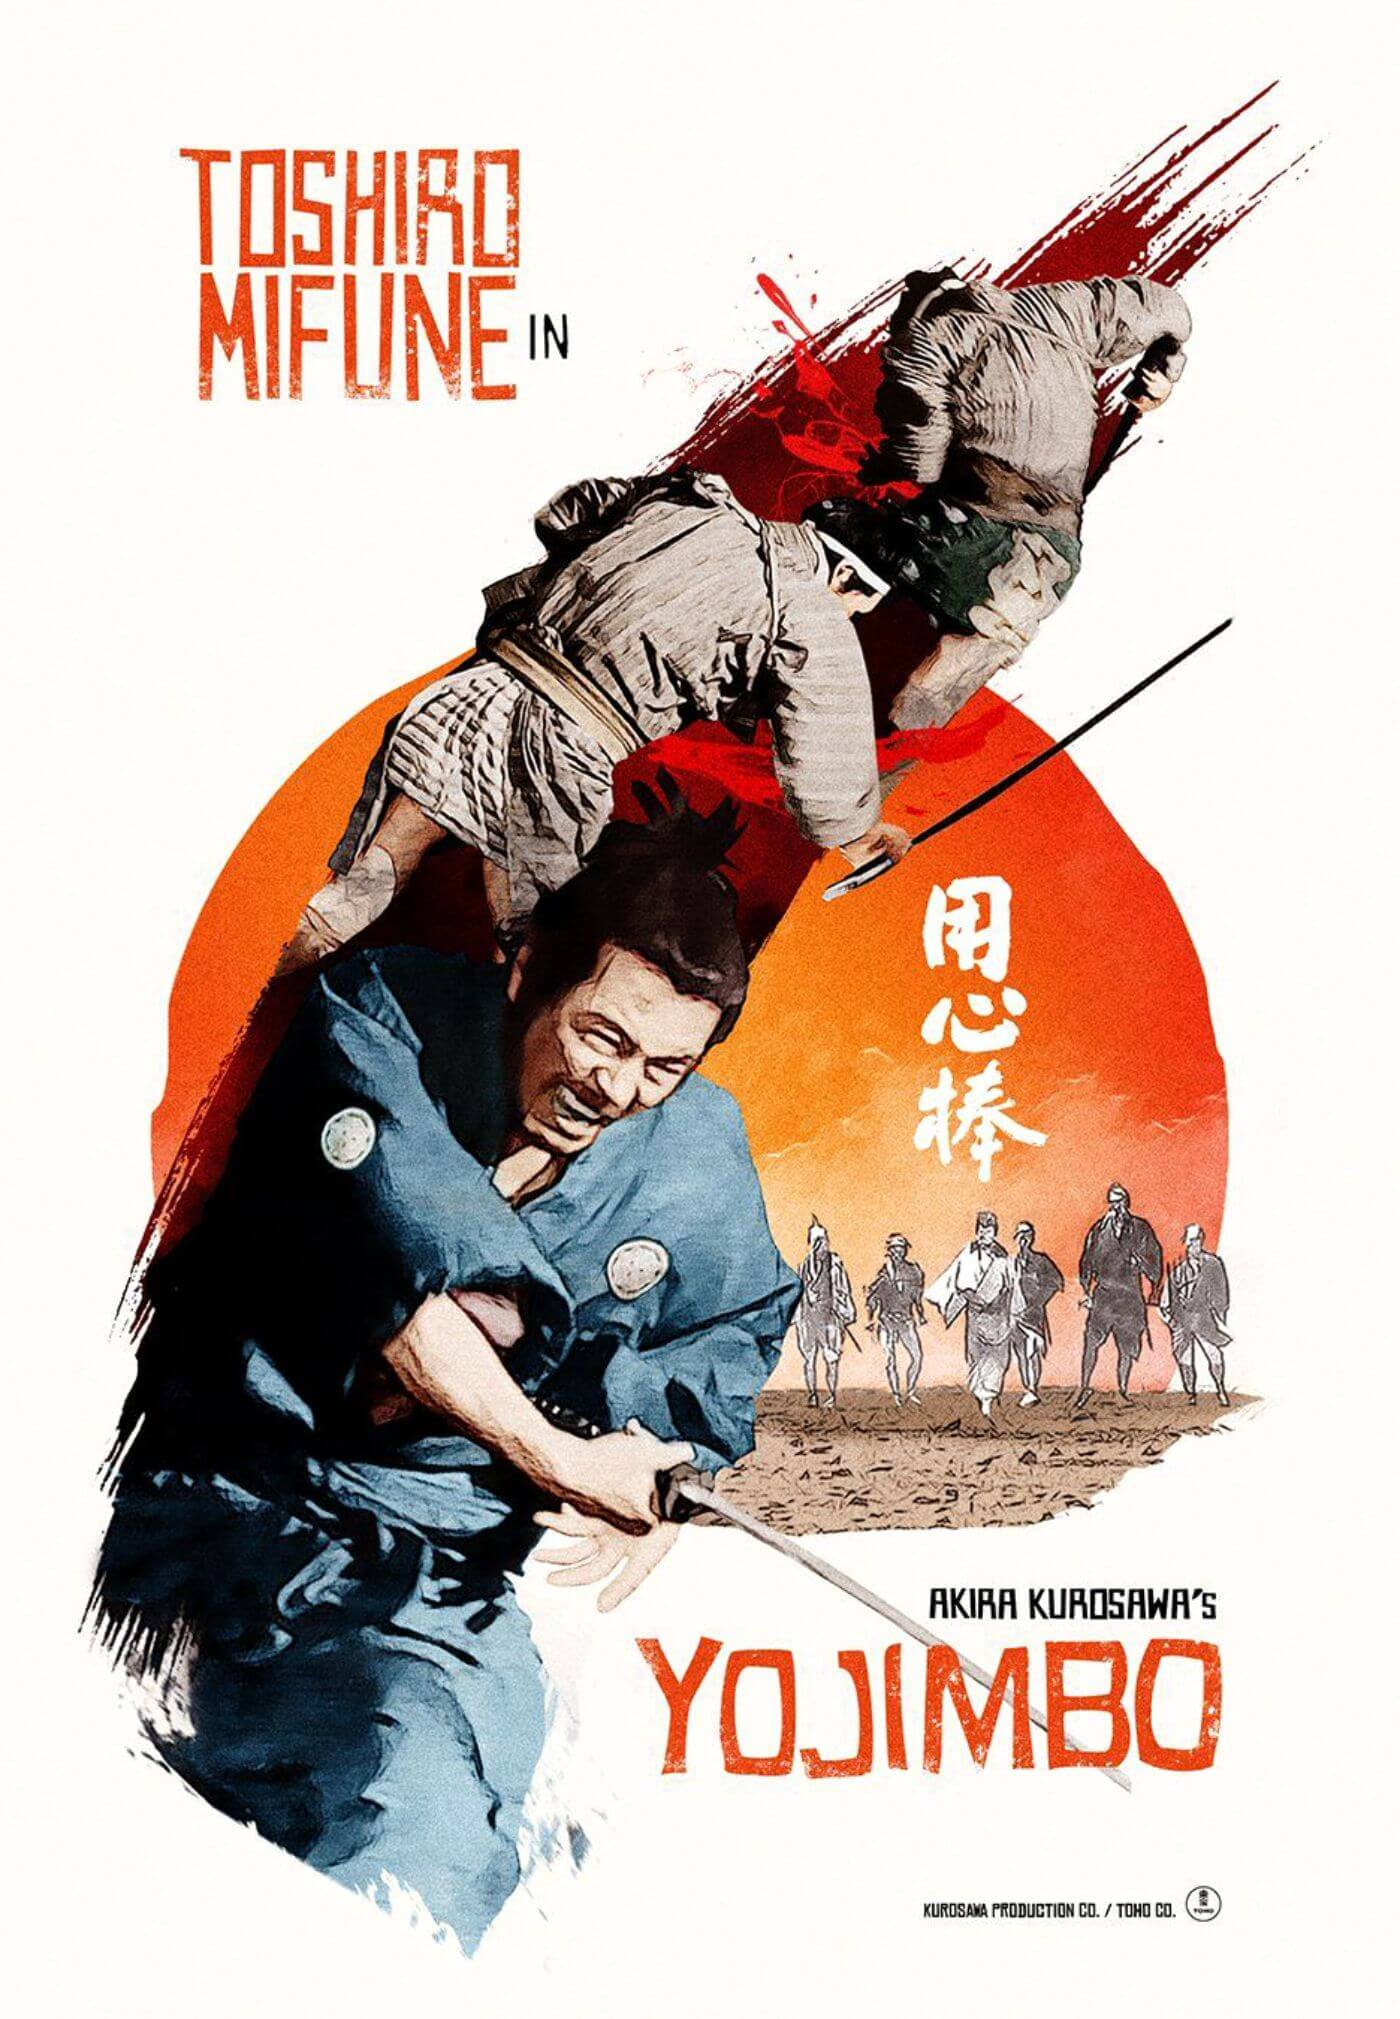 Yojimbo -  Akira Kurosawa Japanese Cinema Masterpiece - Graphic Art Movie Poster